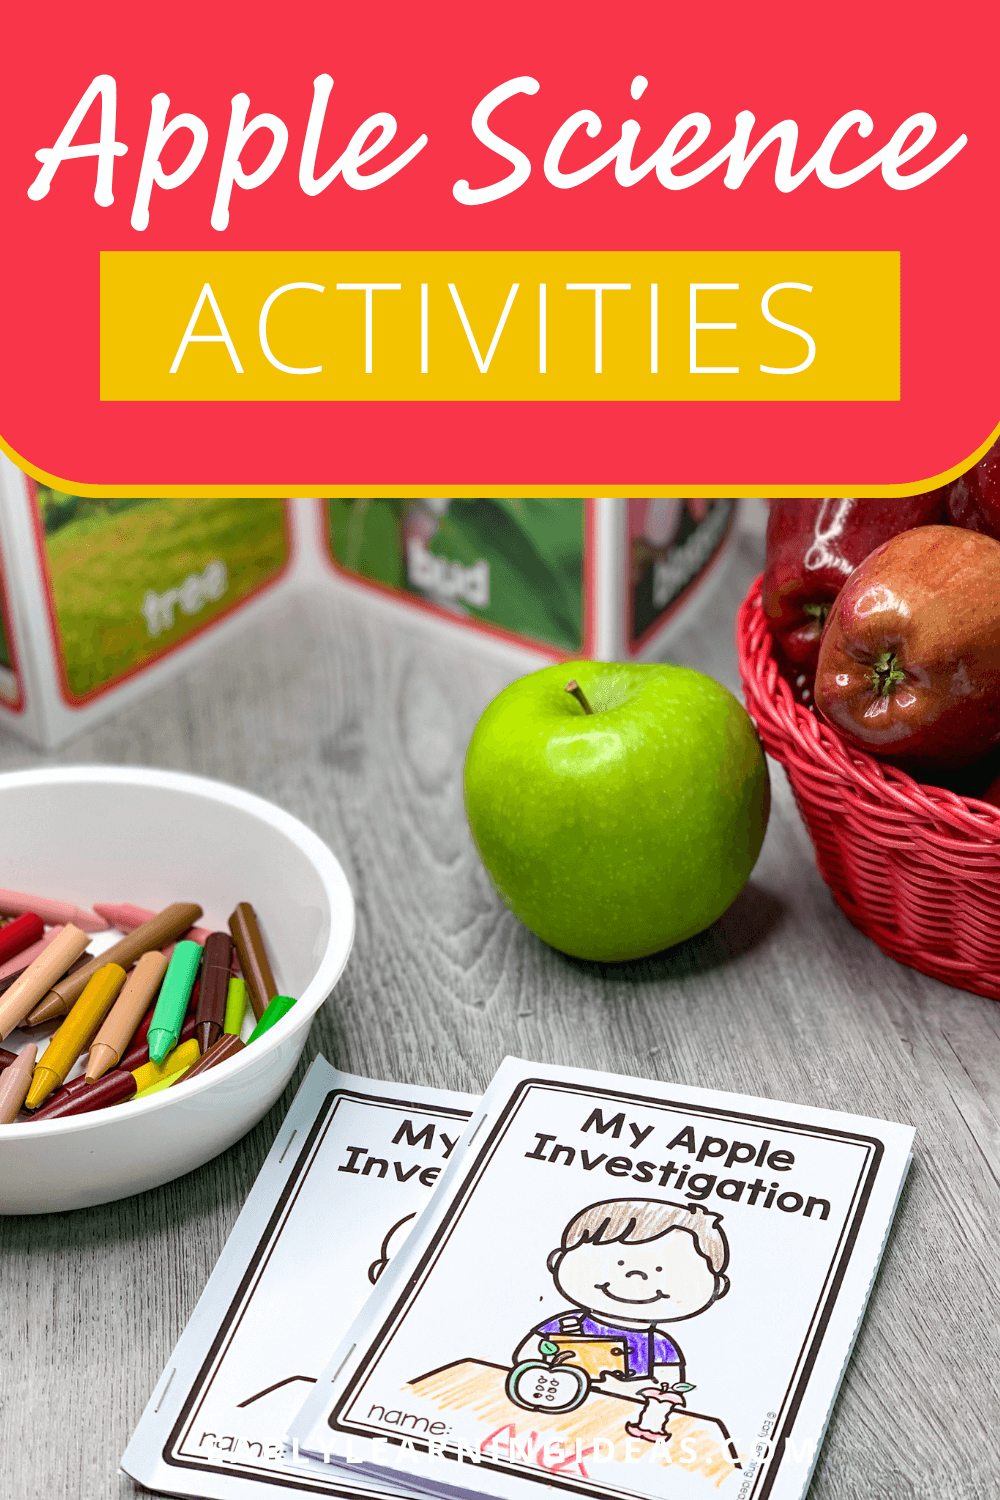 Are You Looking for Fun Apple Science Activities for Preschoolers?